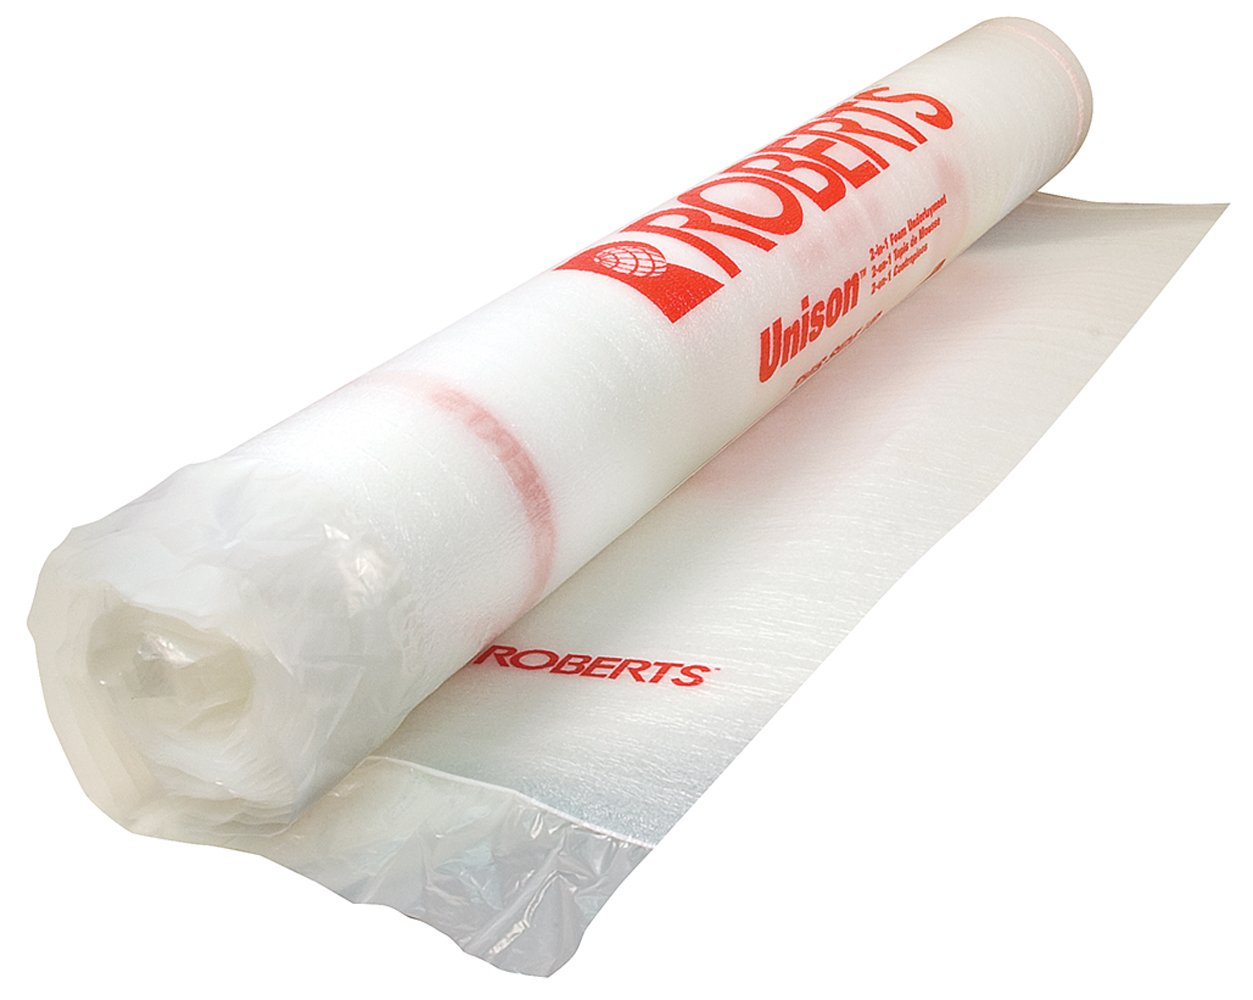 Roberts 70-025 Unison 2-In-1 Underlayment, For Laminate And Wood Floors, Blocks Moisture, Cushions, 100 Sq. Foot Roll